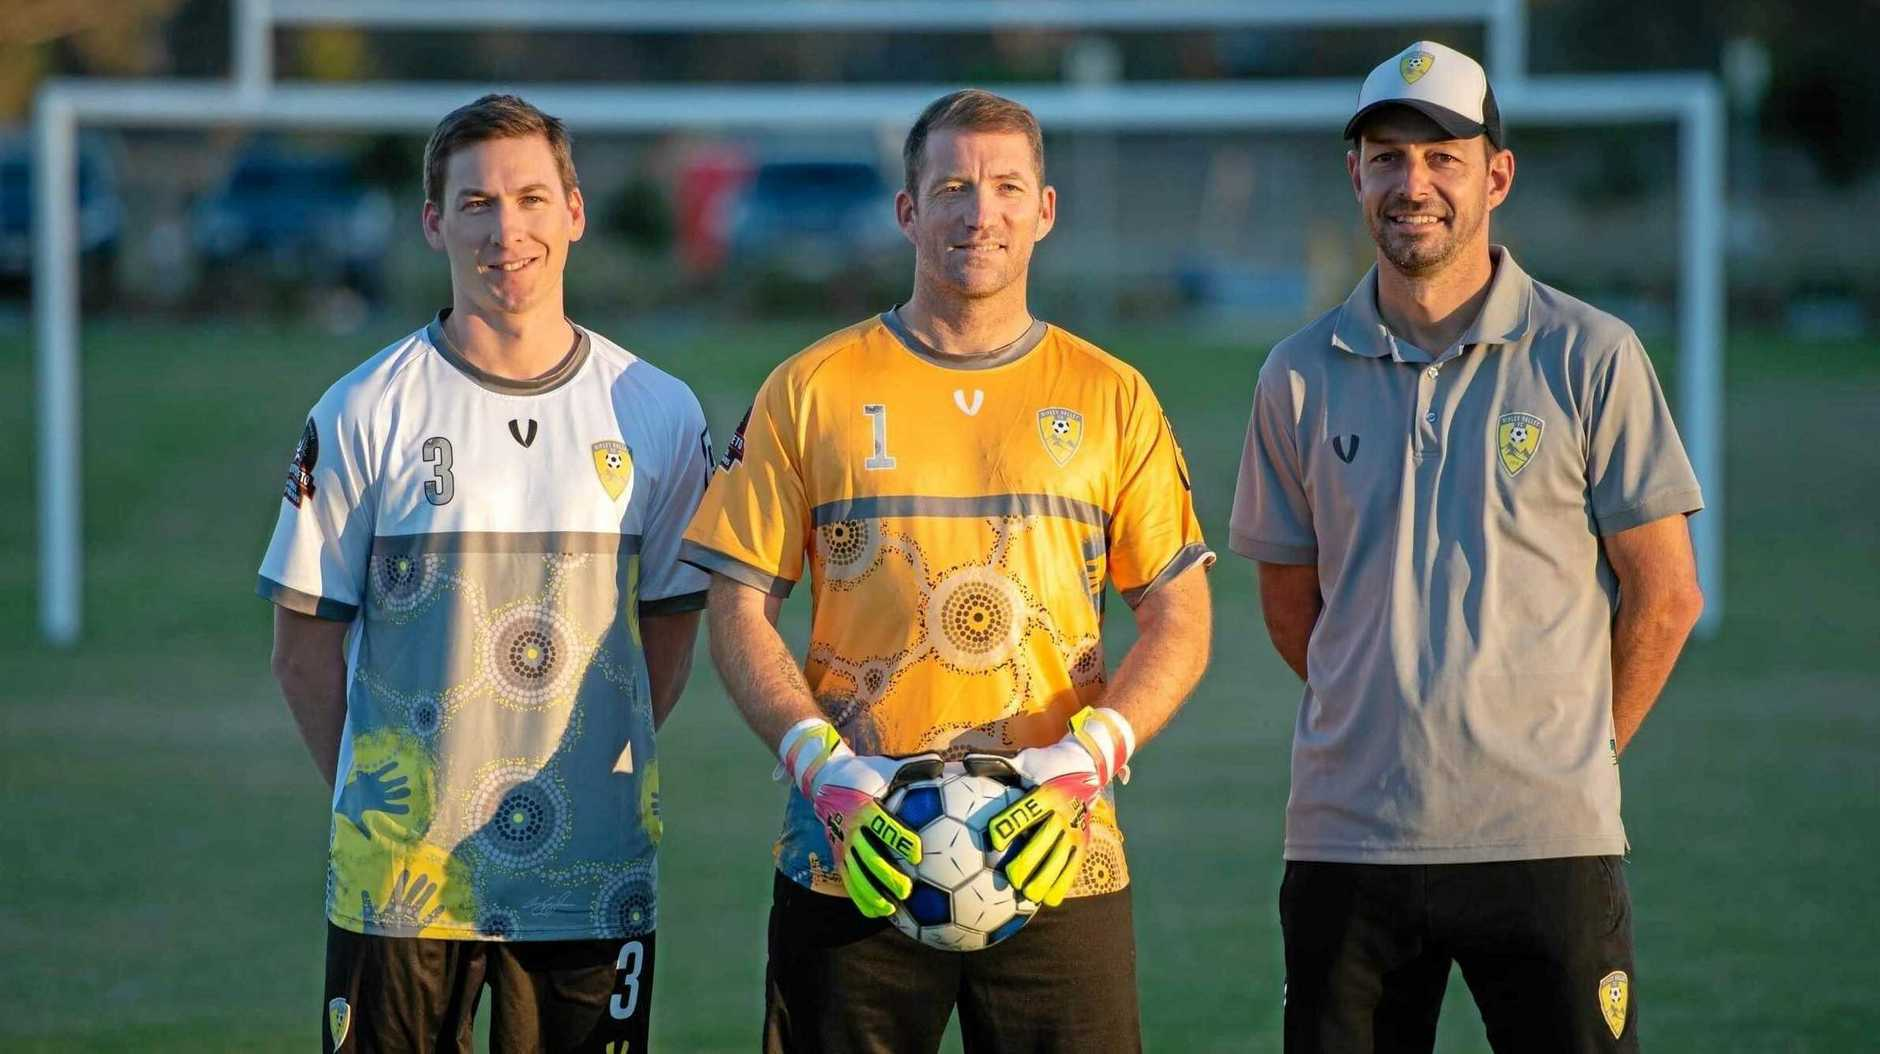 Preparing for Friday night's local derby wearing a special NAIDOC strip are (from left) Ripley Valley FC captain Alex Weatherby and goalkeeping and assistant coach David Wilson, with coach Nick Paterson.